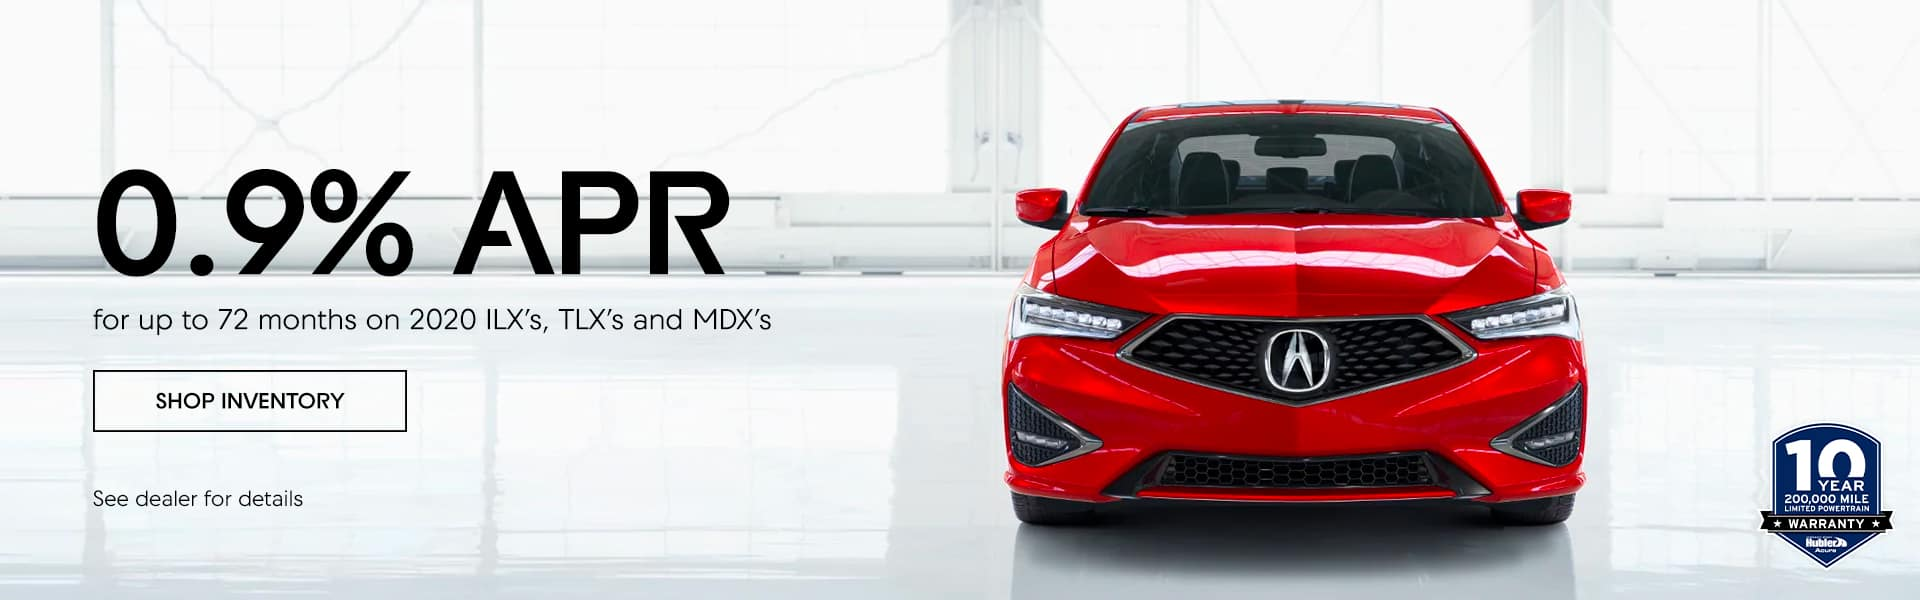 2020 ILX's, TLX's and MDX's